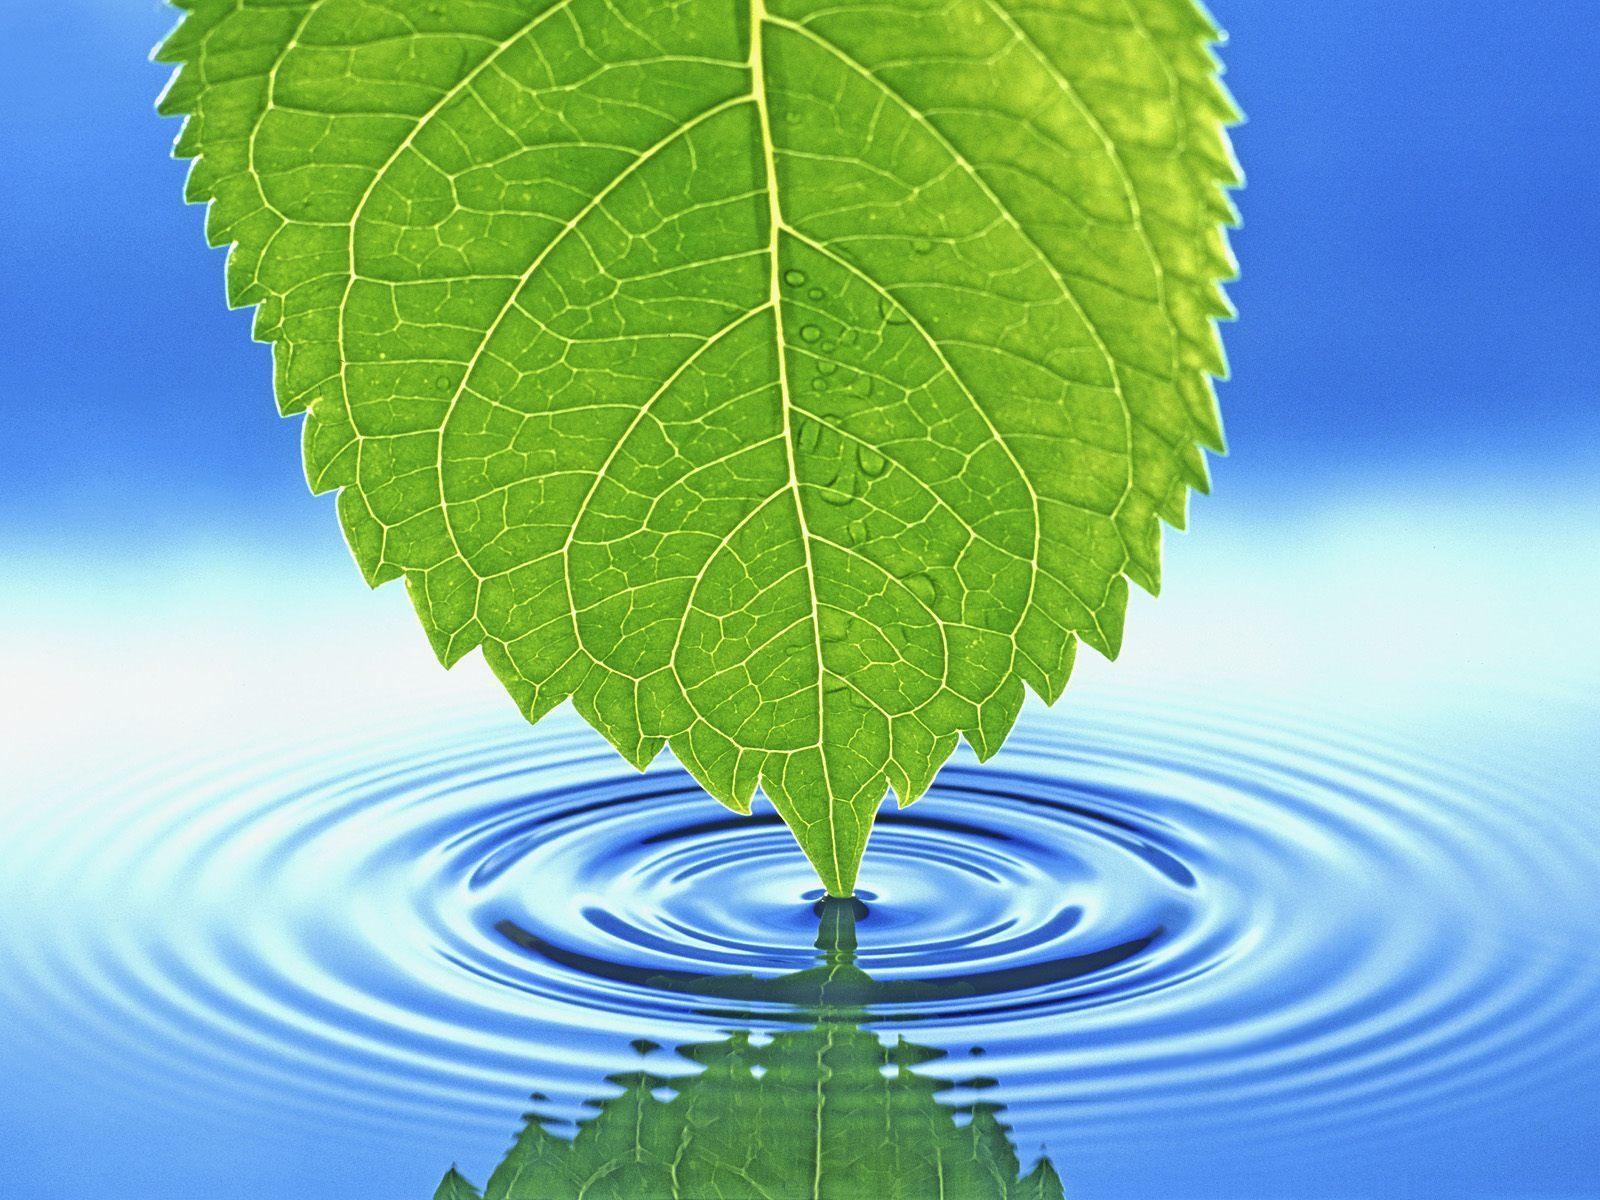 click to free download the wallpaper--Beautiful Image of Landscape, a Green Leaf Touching Water, Ripples Generated